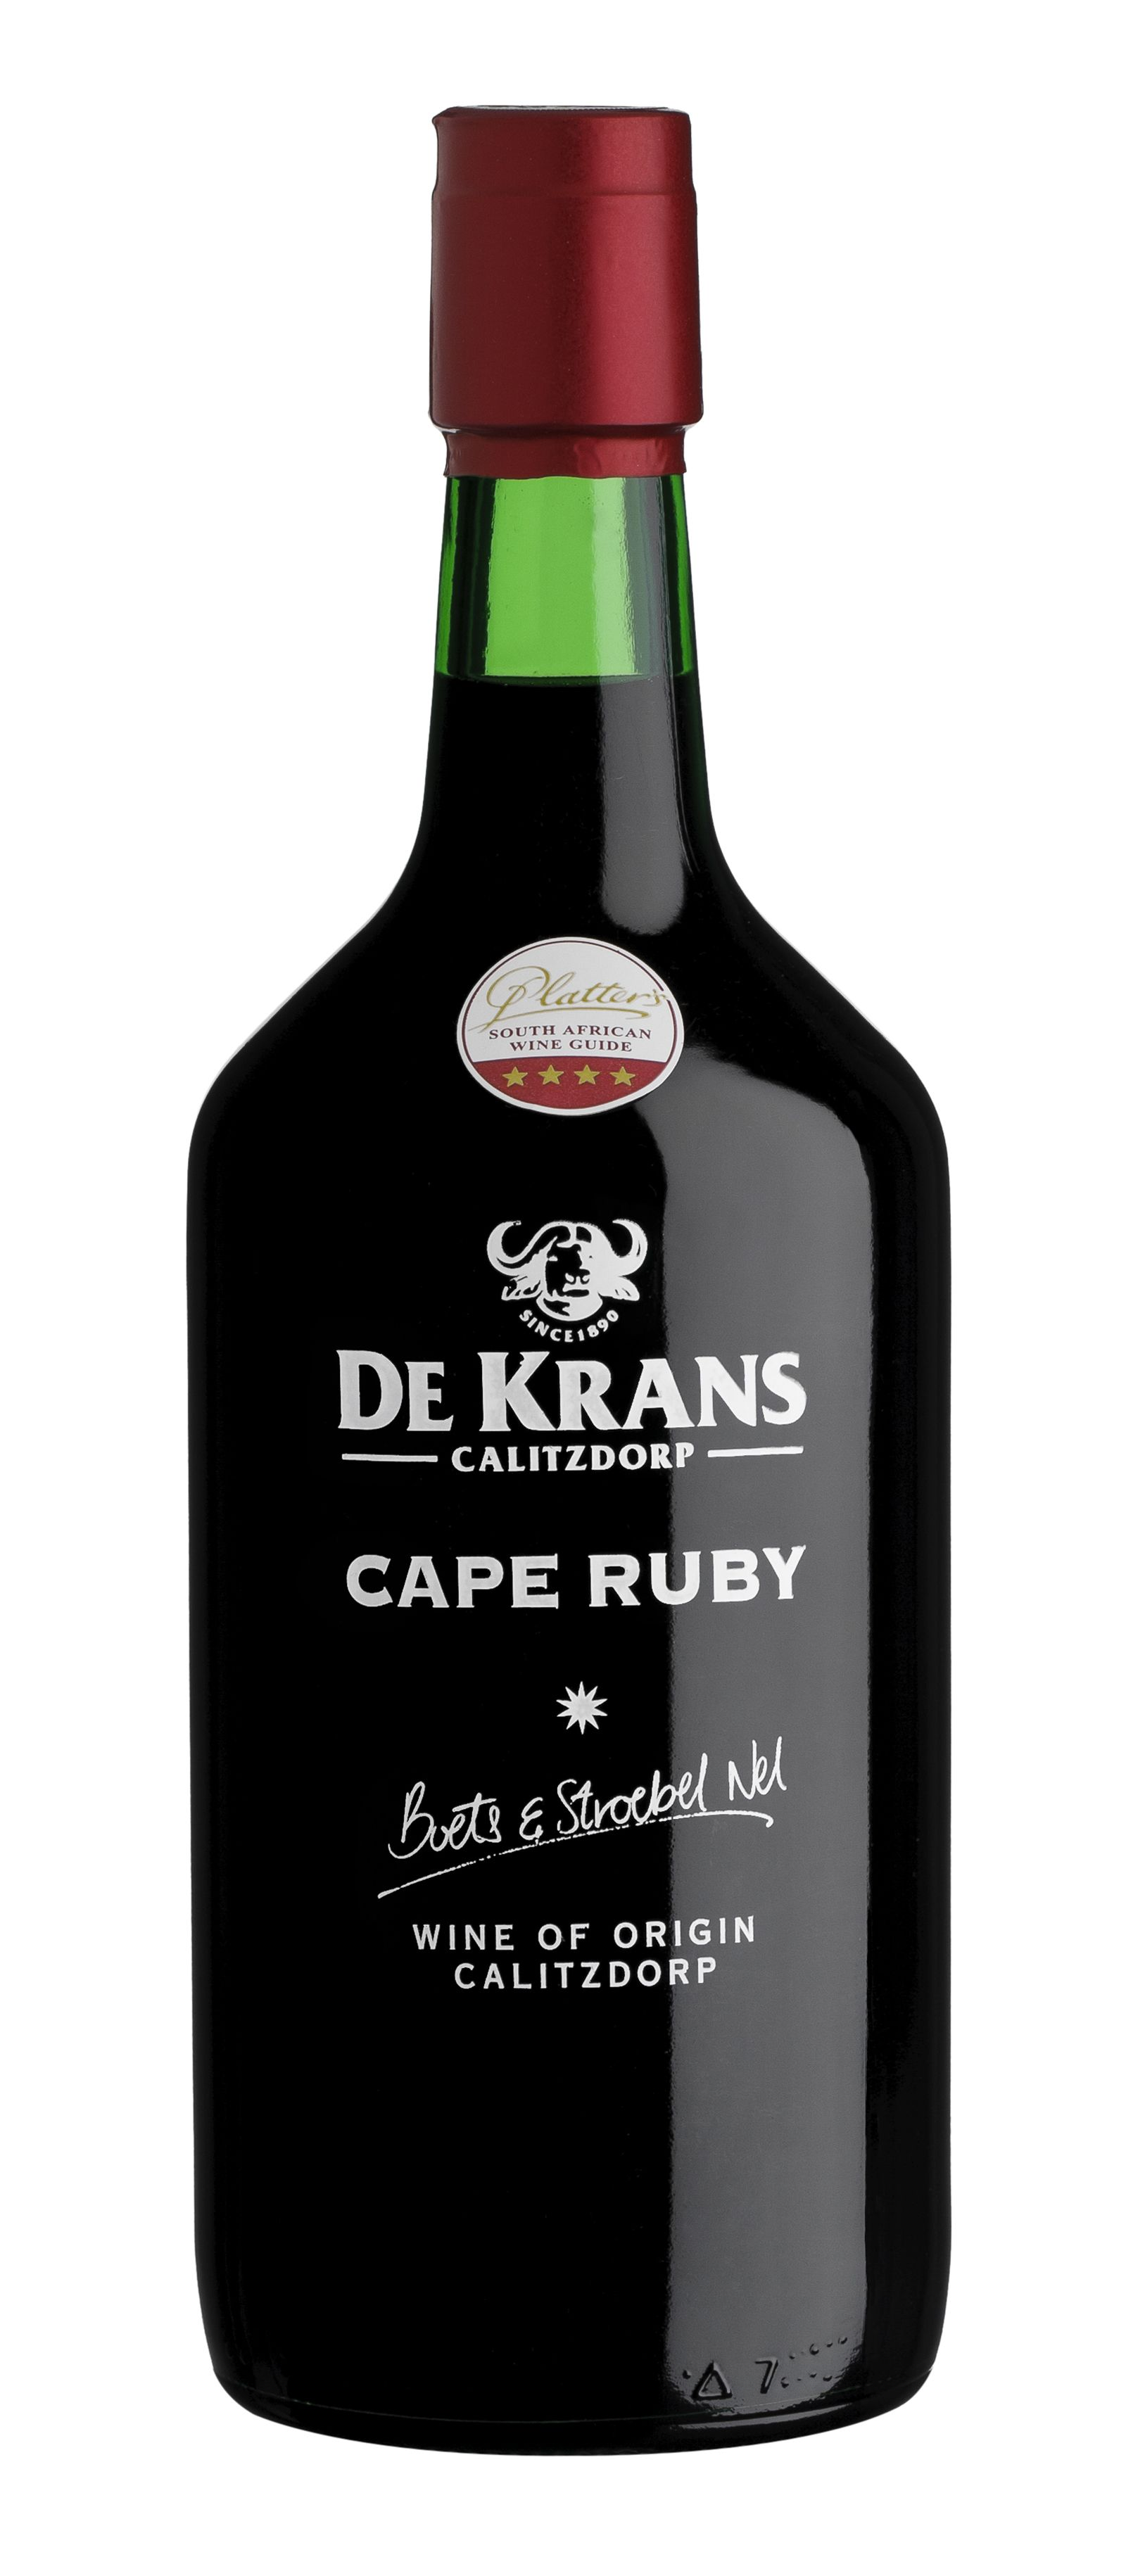 De Krans Cape Ruby Nv Scores 84 Points And 5 Stars In Value